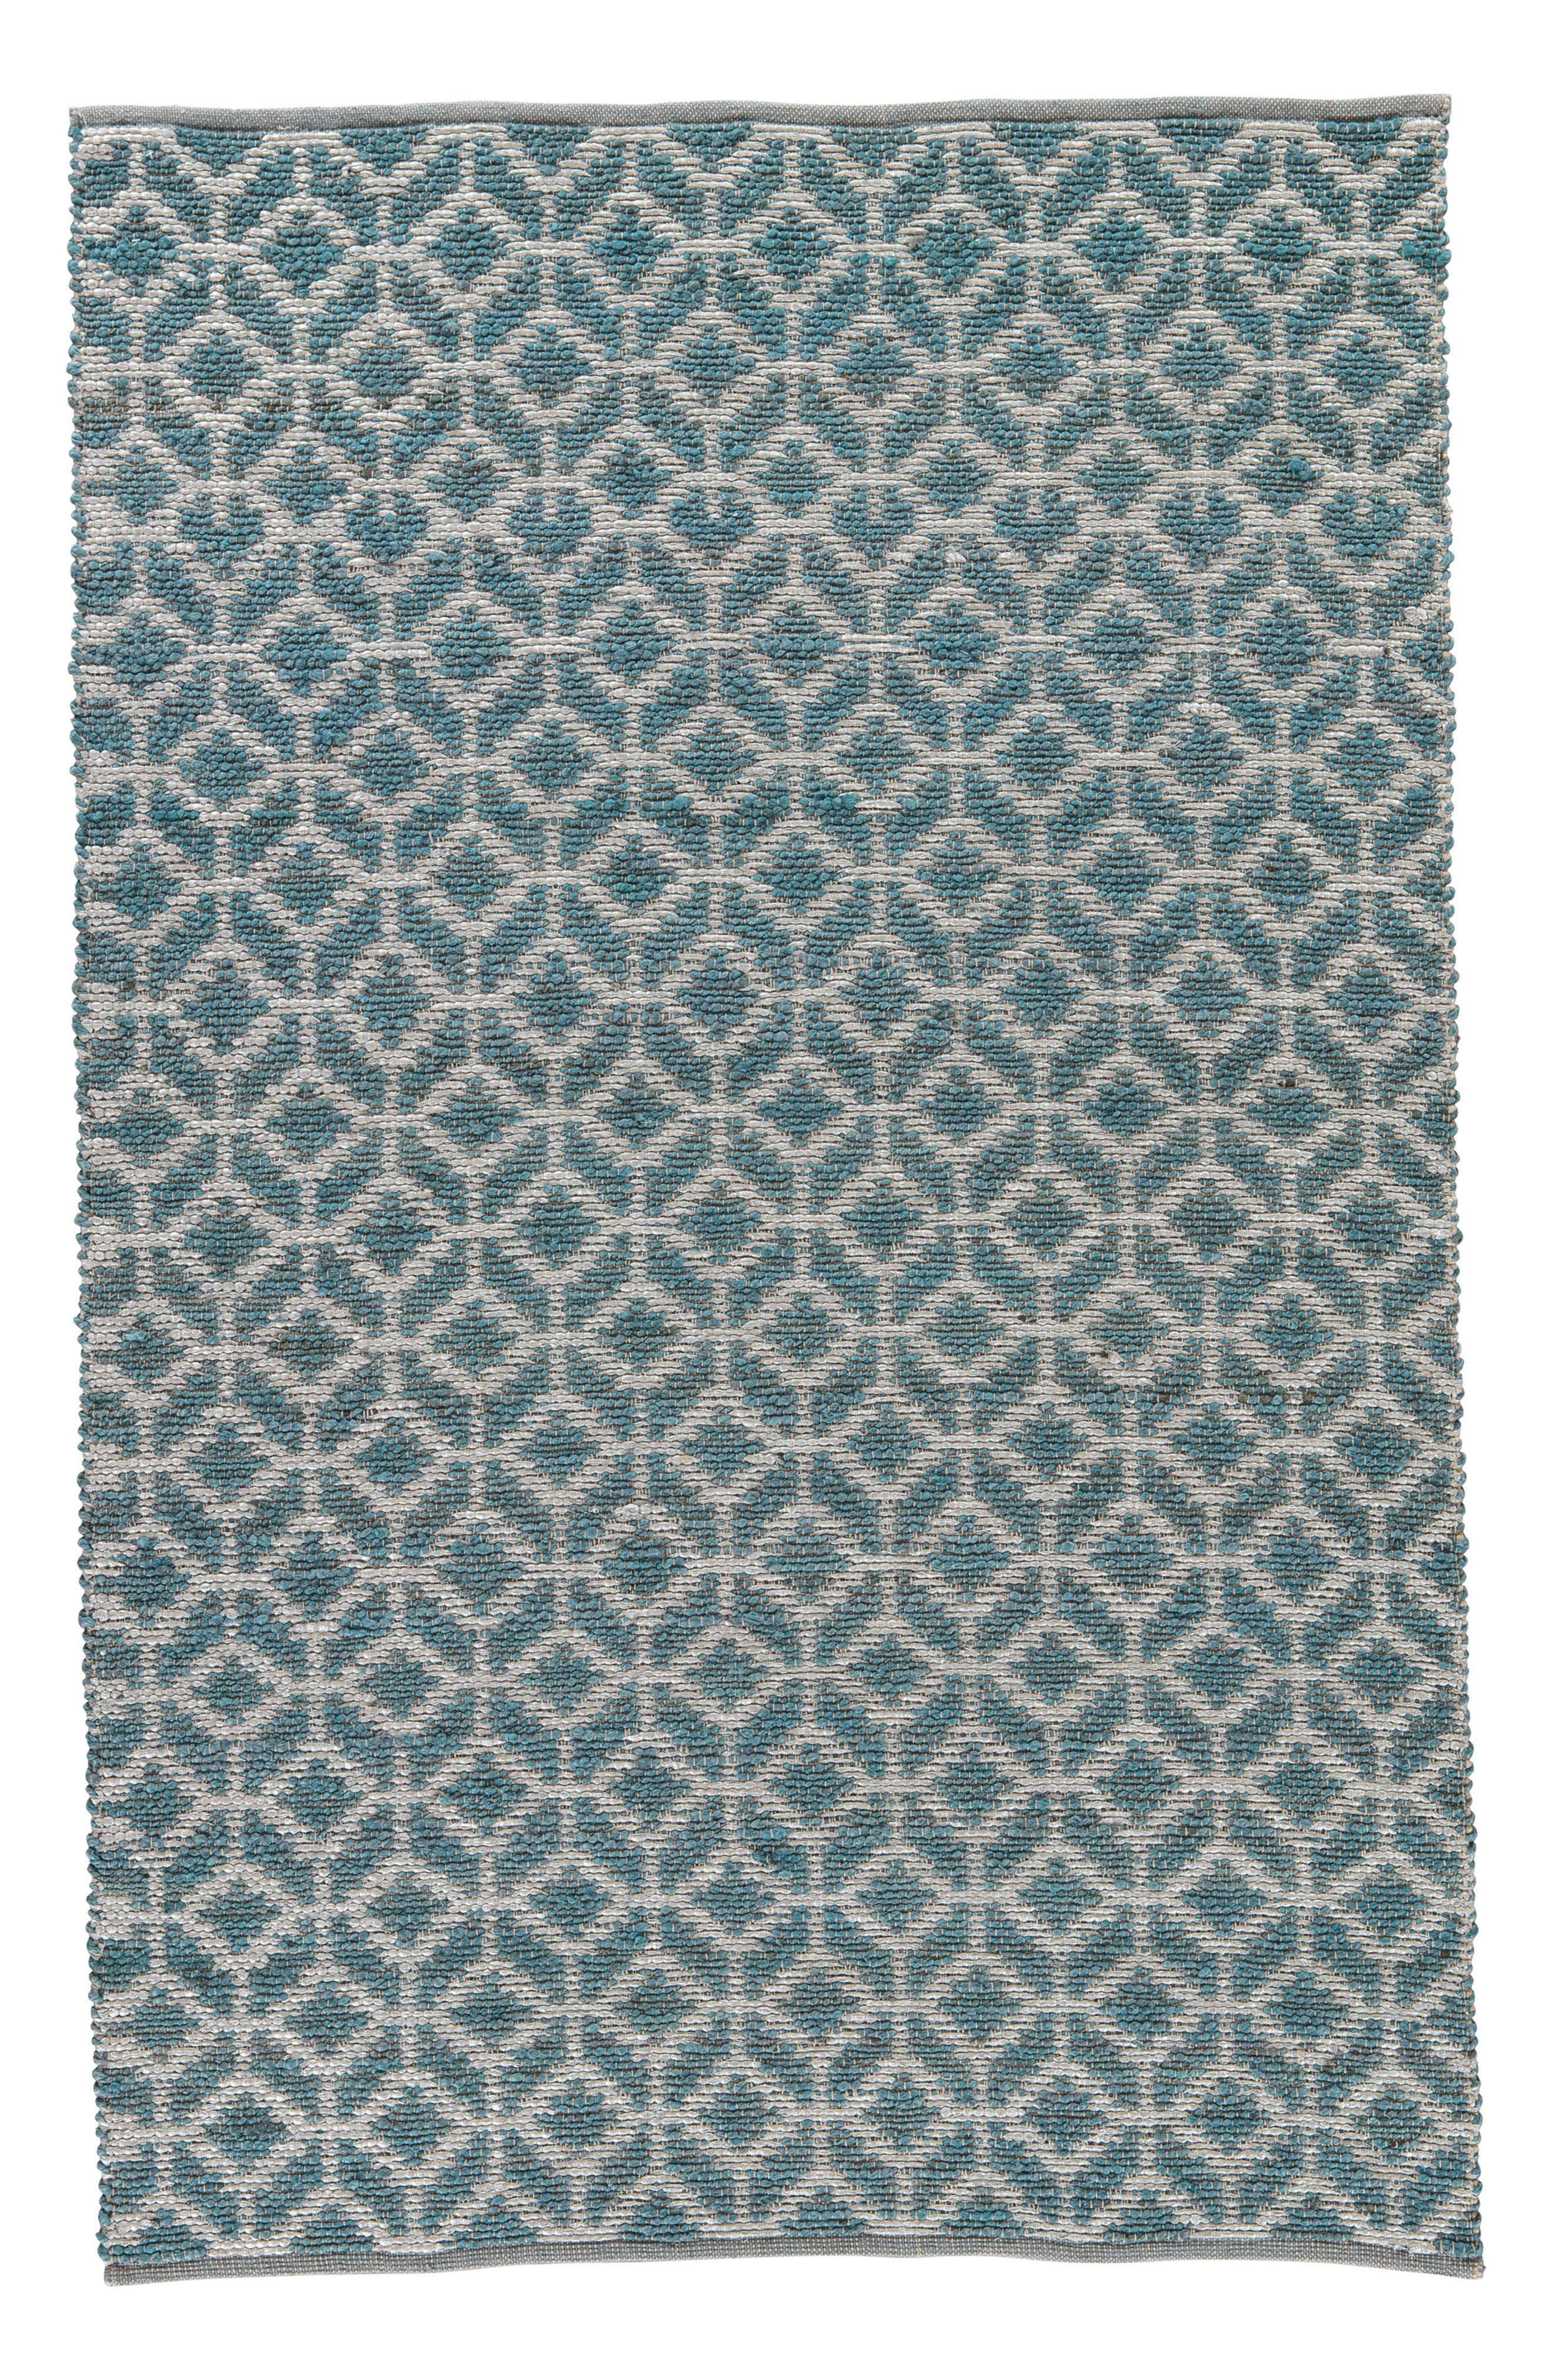 Calm Waters Rug,                             Main thumbnail 1, color,                             INDIAN TEAL/ SILVER